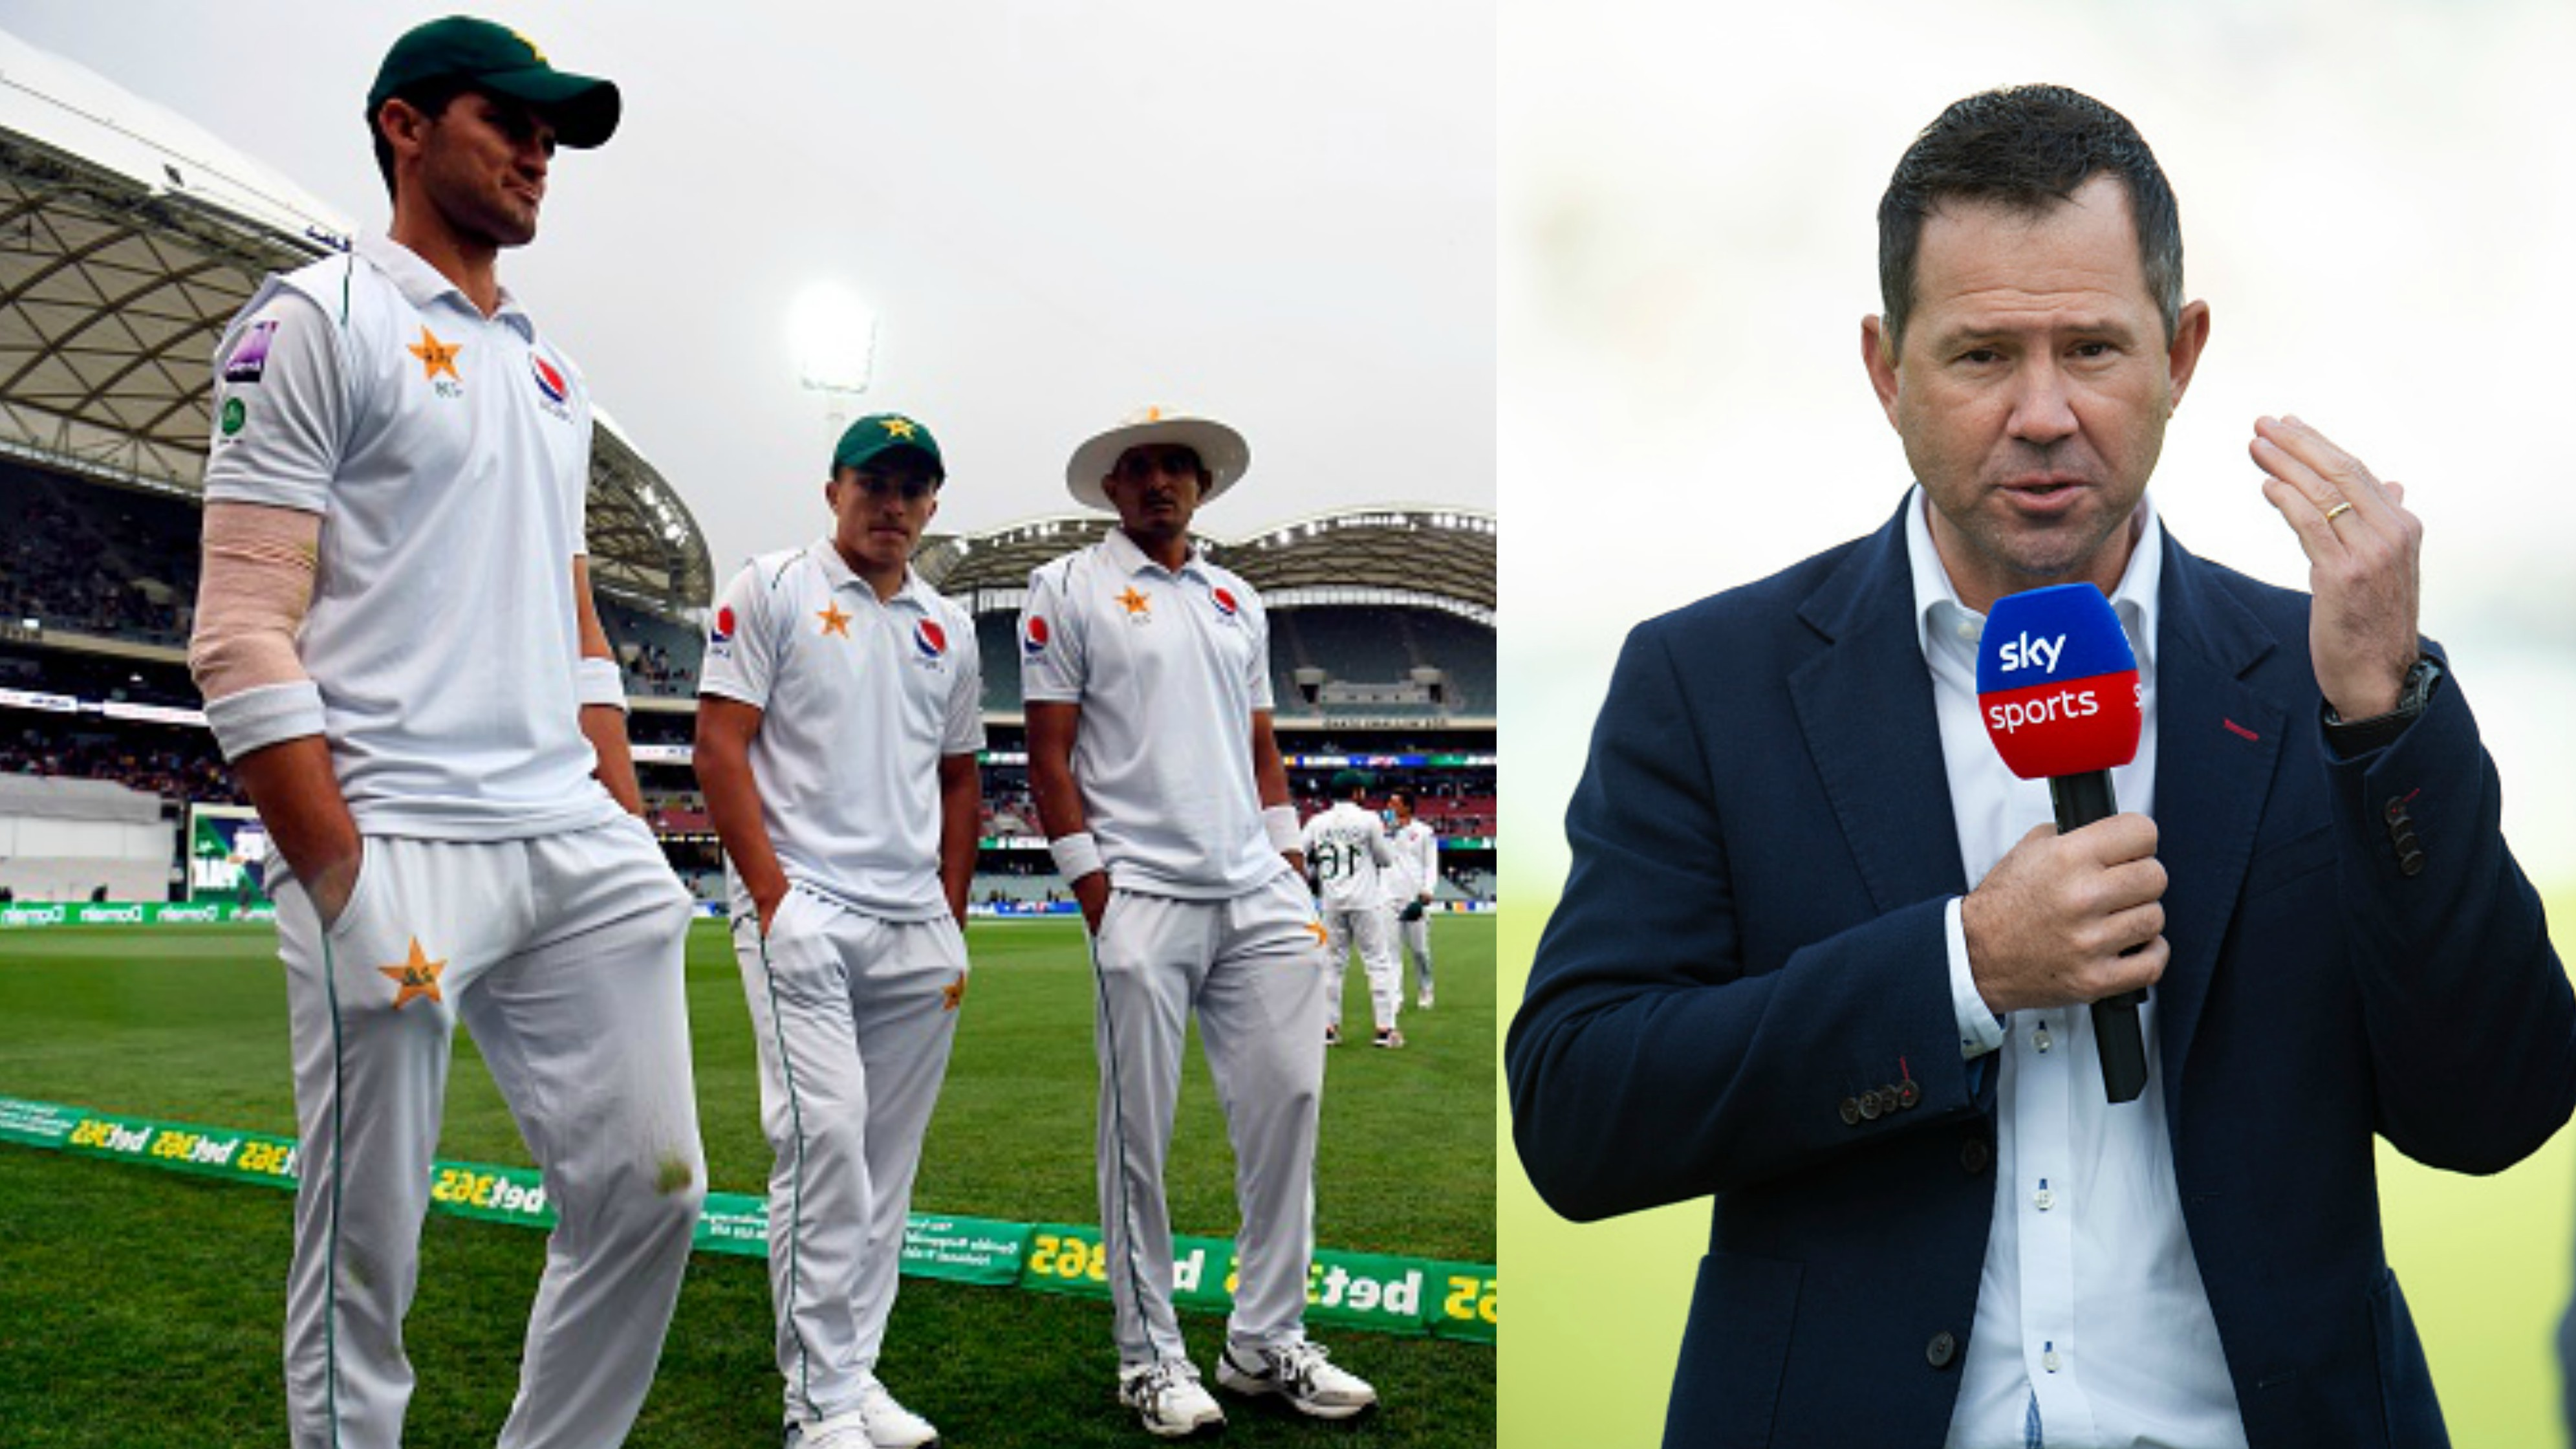 AUS v PAK 2019: Ricky Ponting slams Pakistan's terrible bowling in the ongoing Australia Test series